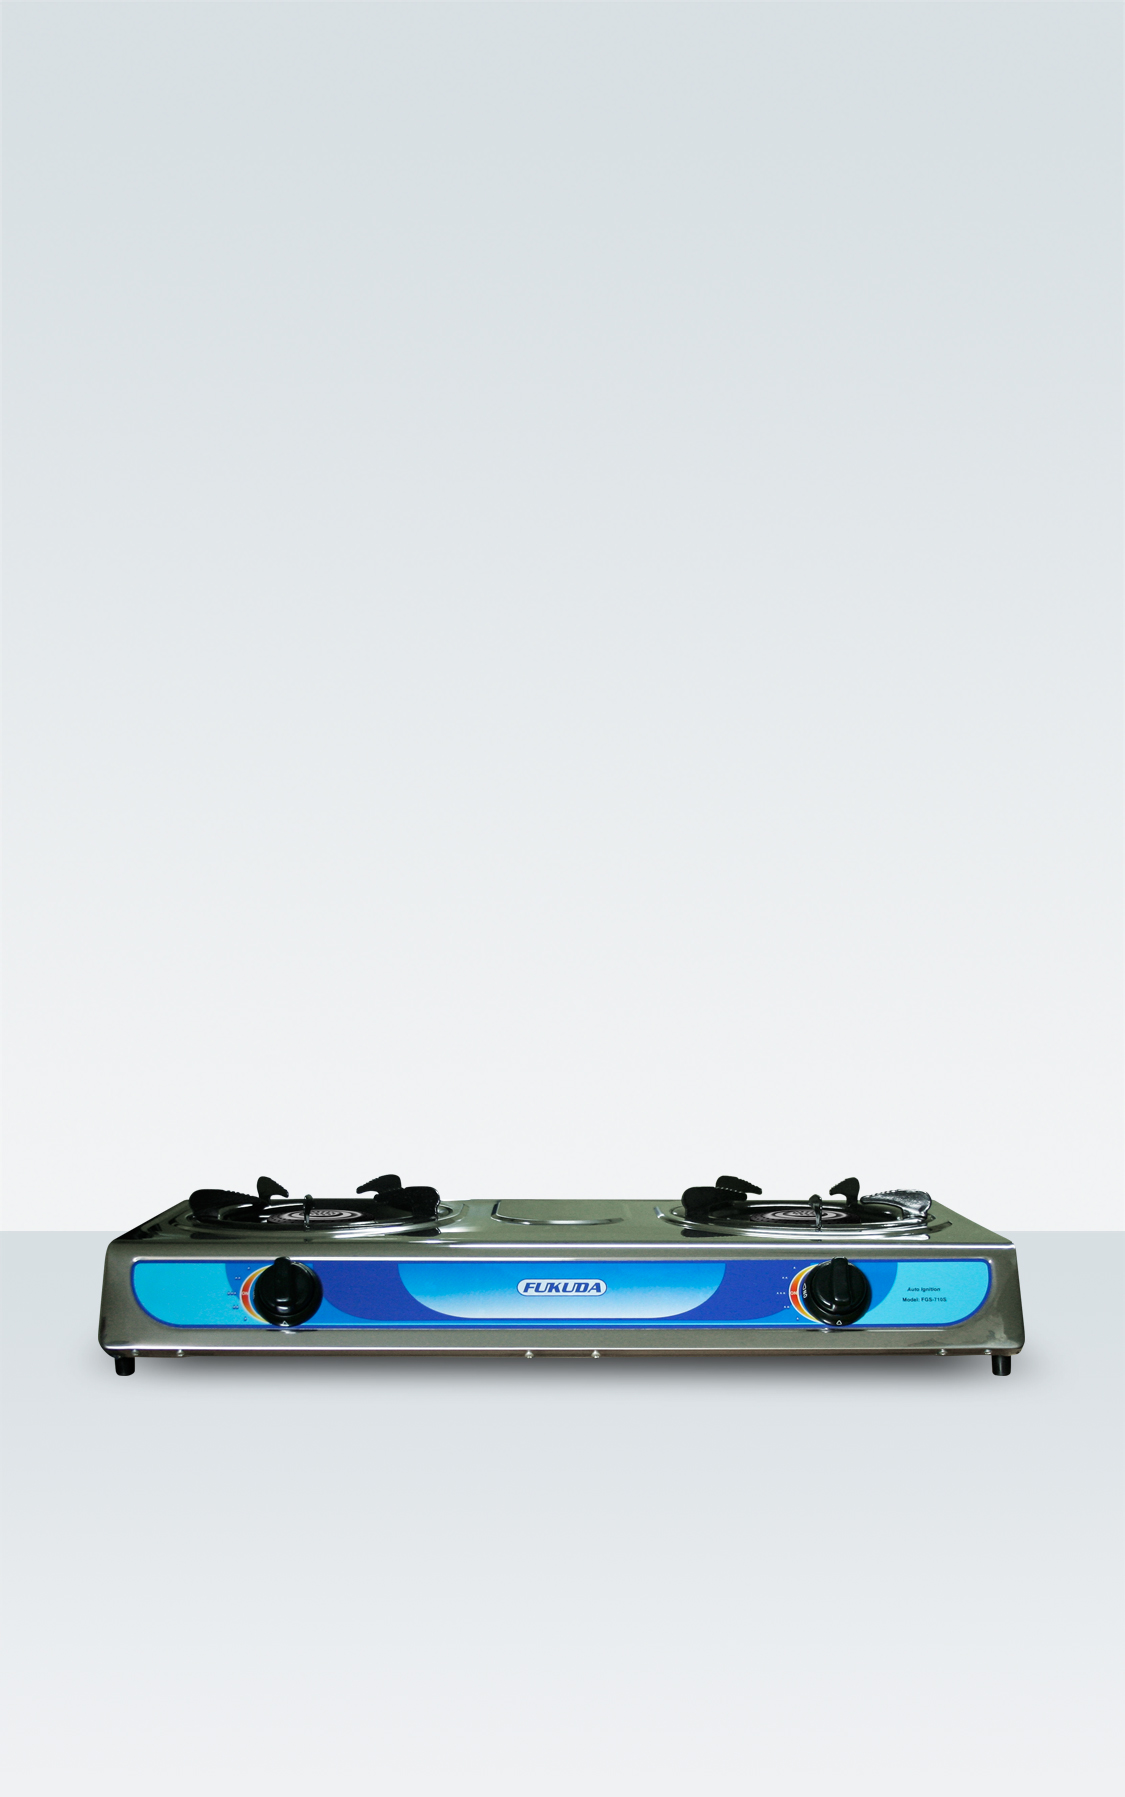 STAINLESS DOUBLE BURNER GAS STOVE